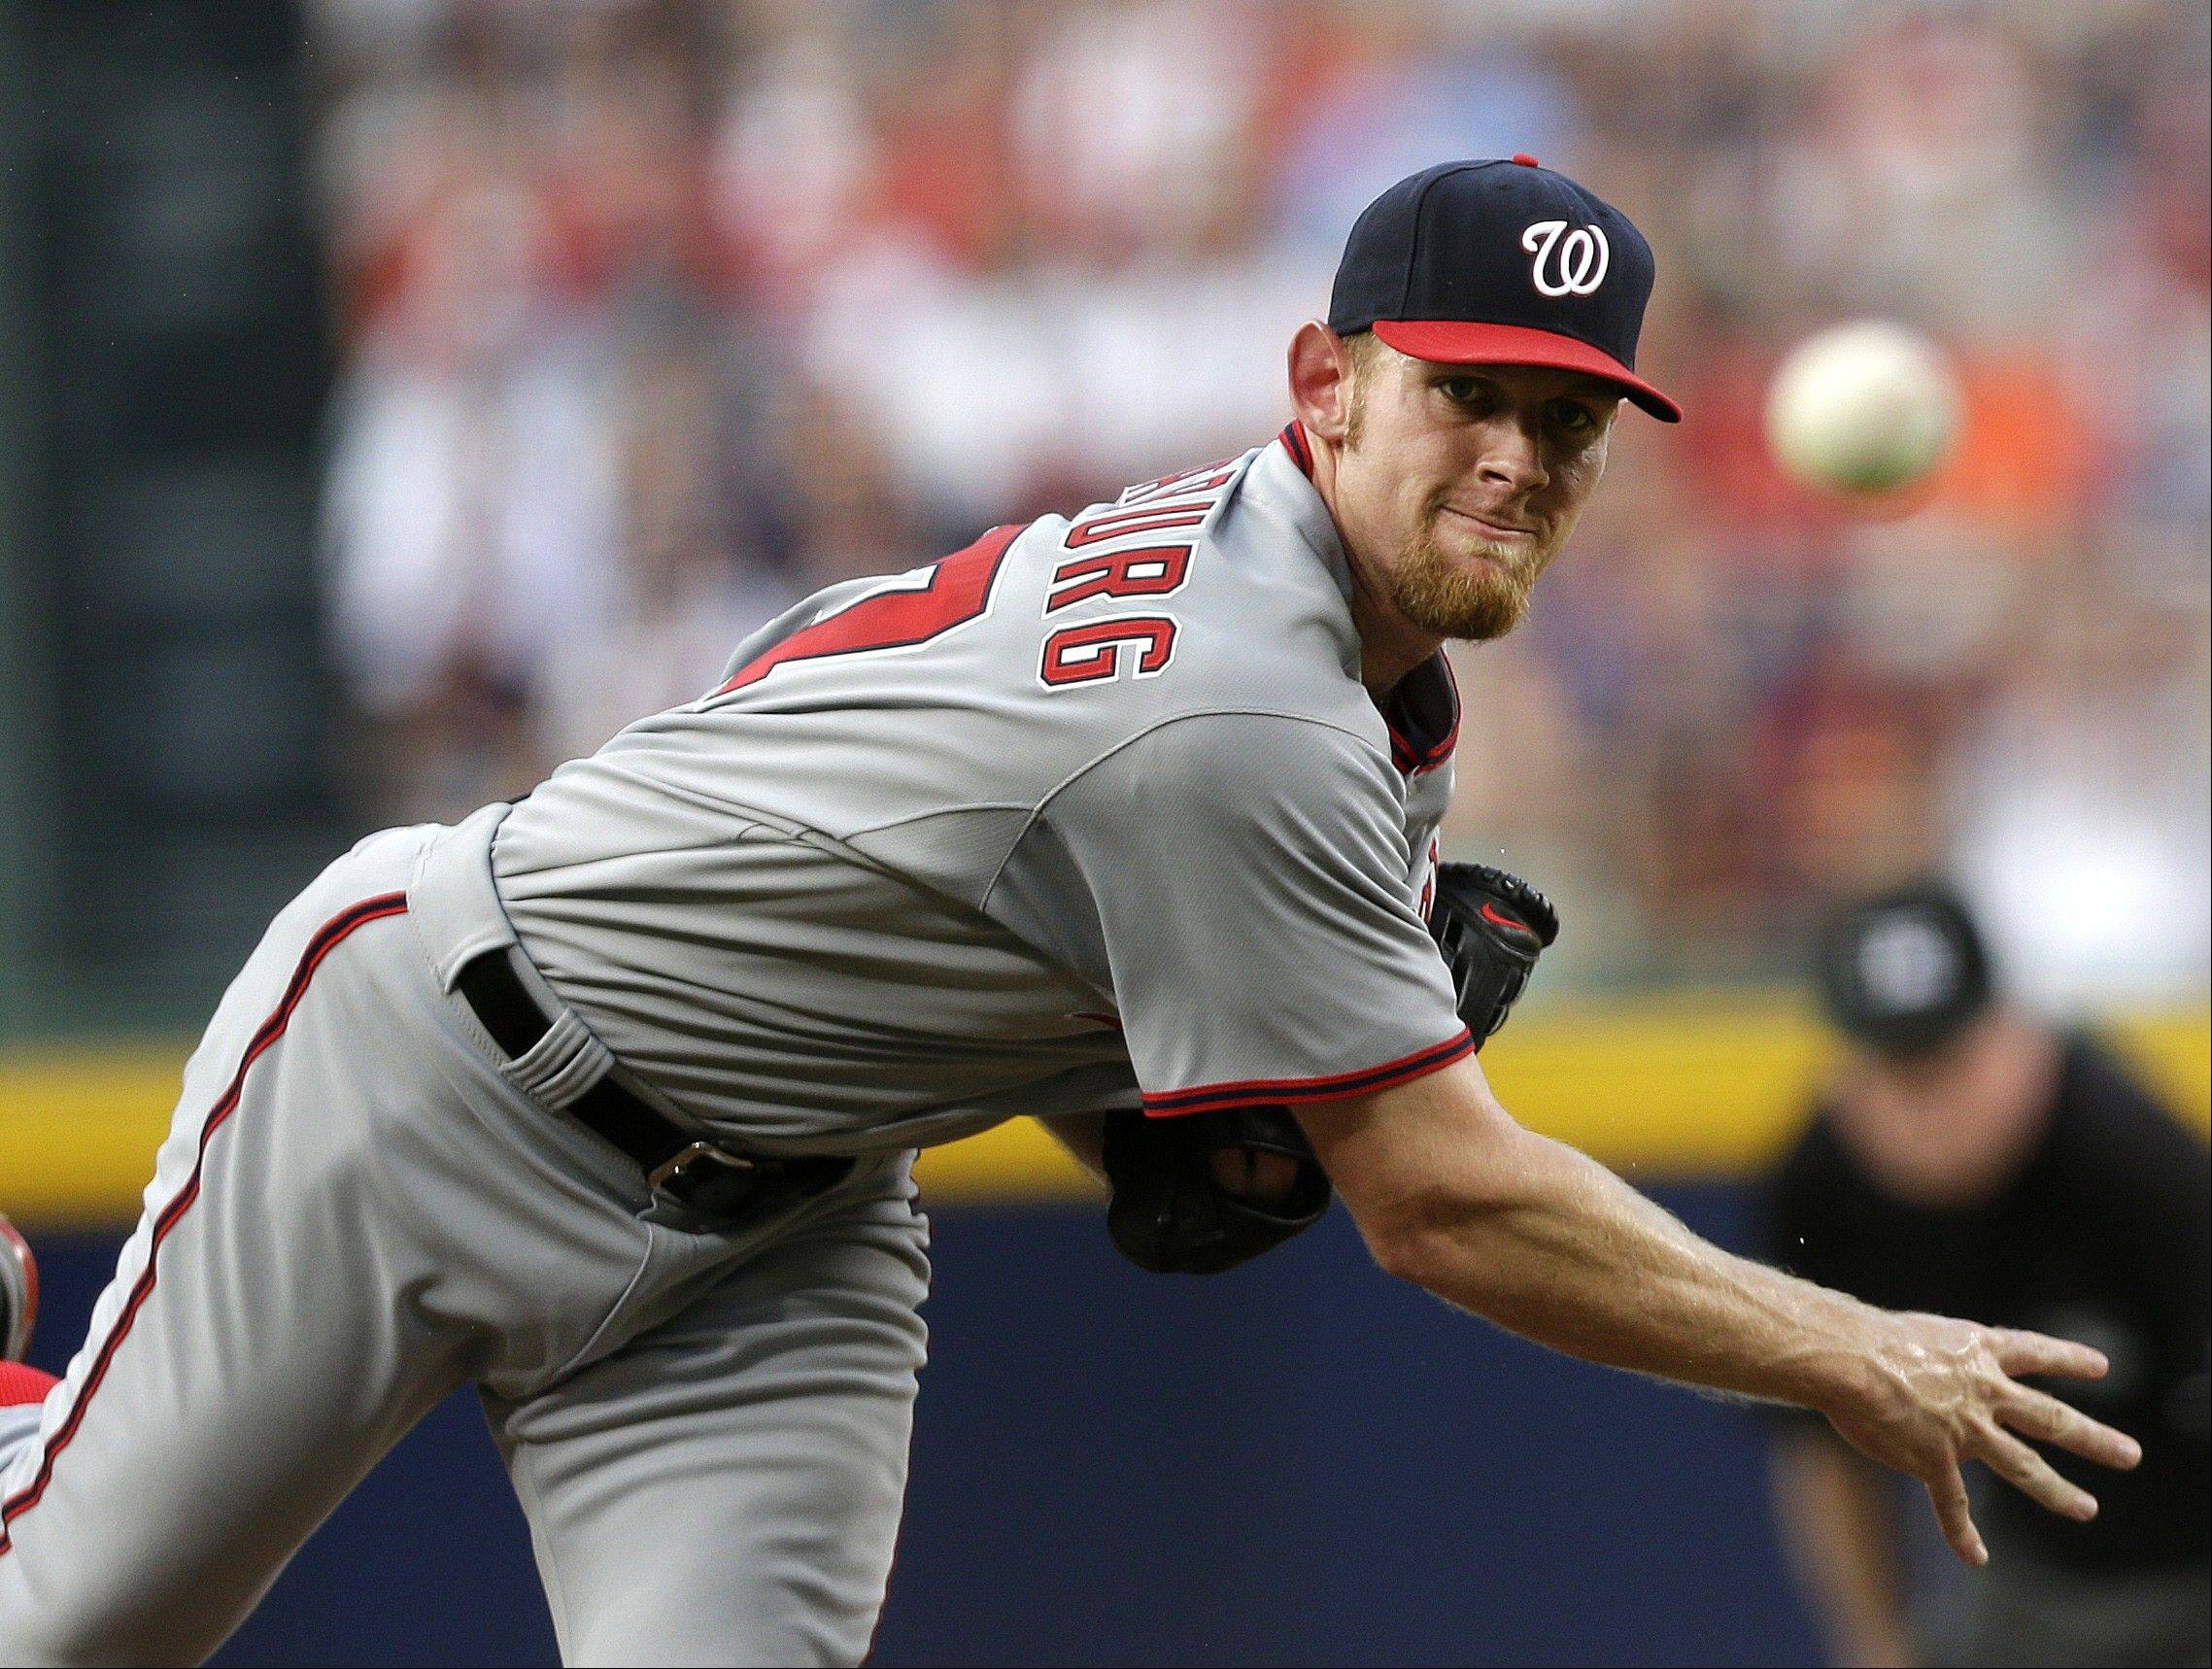 Washington Nationals starting pitcher Stephen Strasburg, who was limited to 160 innings last season to protect his arm, was placed on the 15-day disabled list this week.